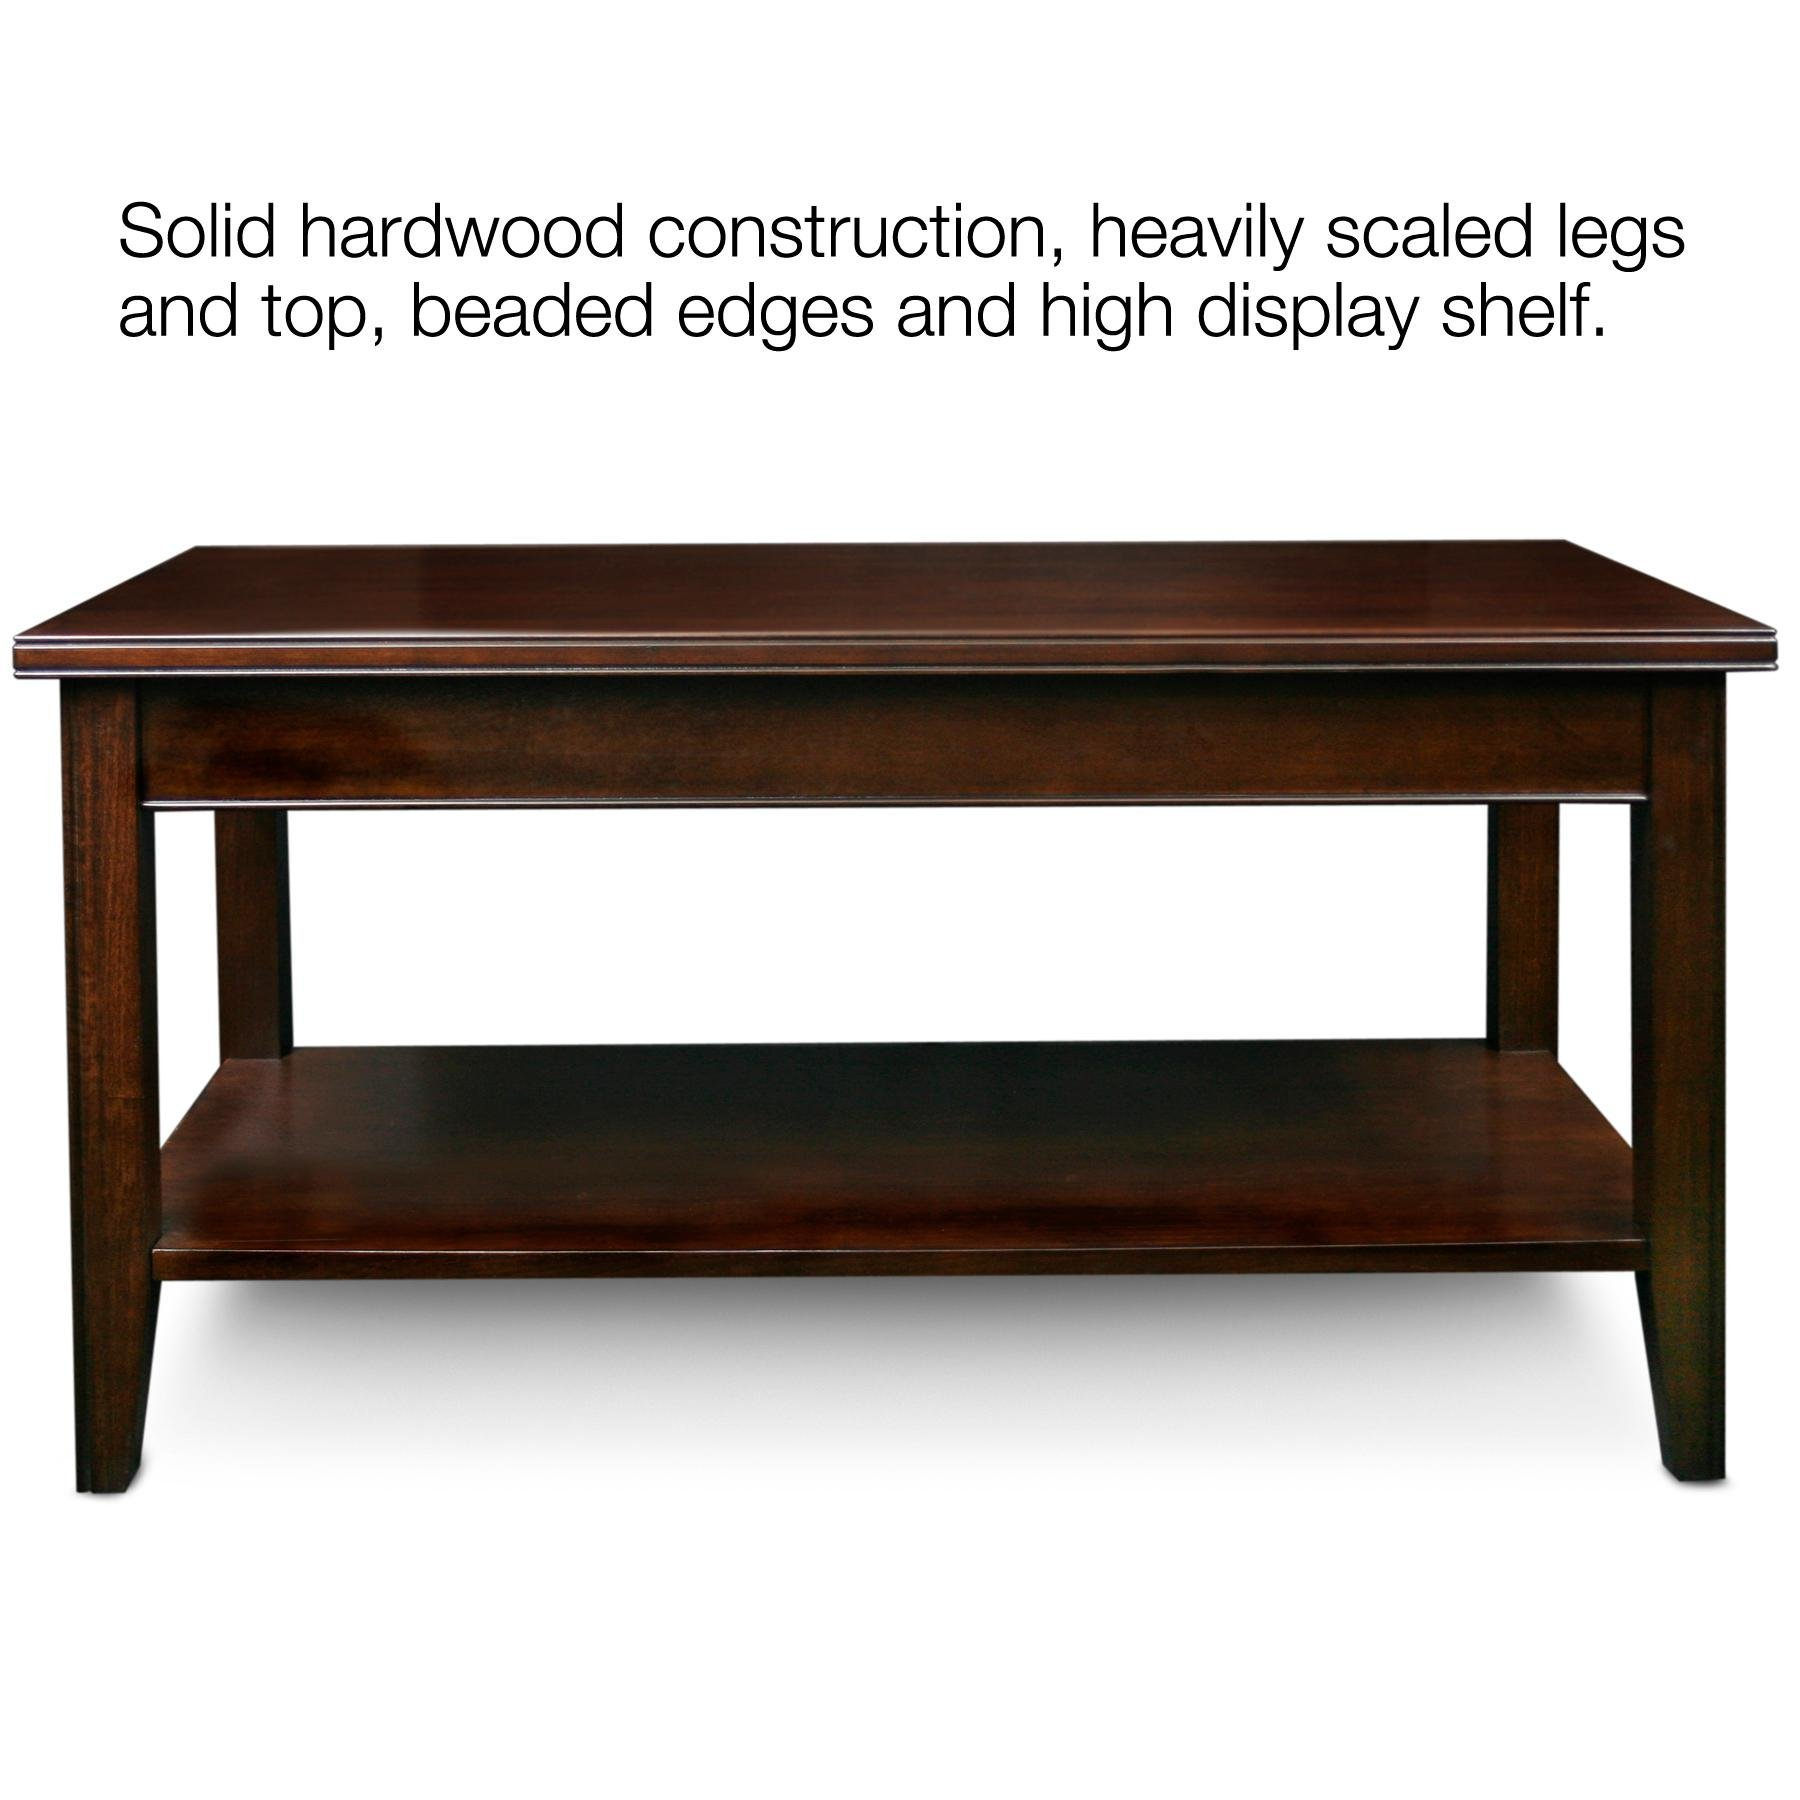 Leick Laurent Condo/Apartment Coffee Table: Amazon.ca: Home & Kitchen